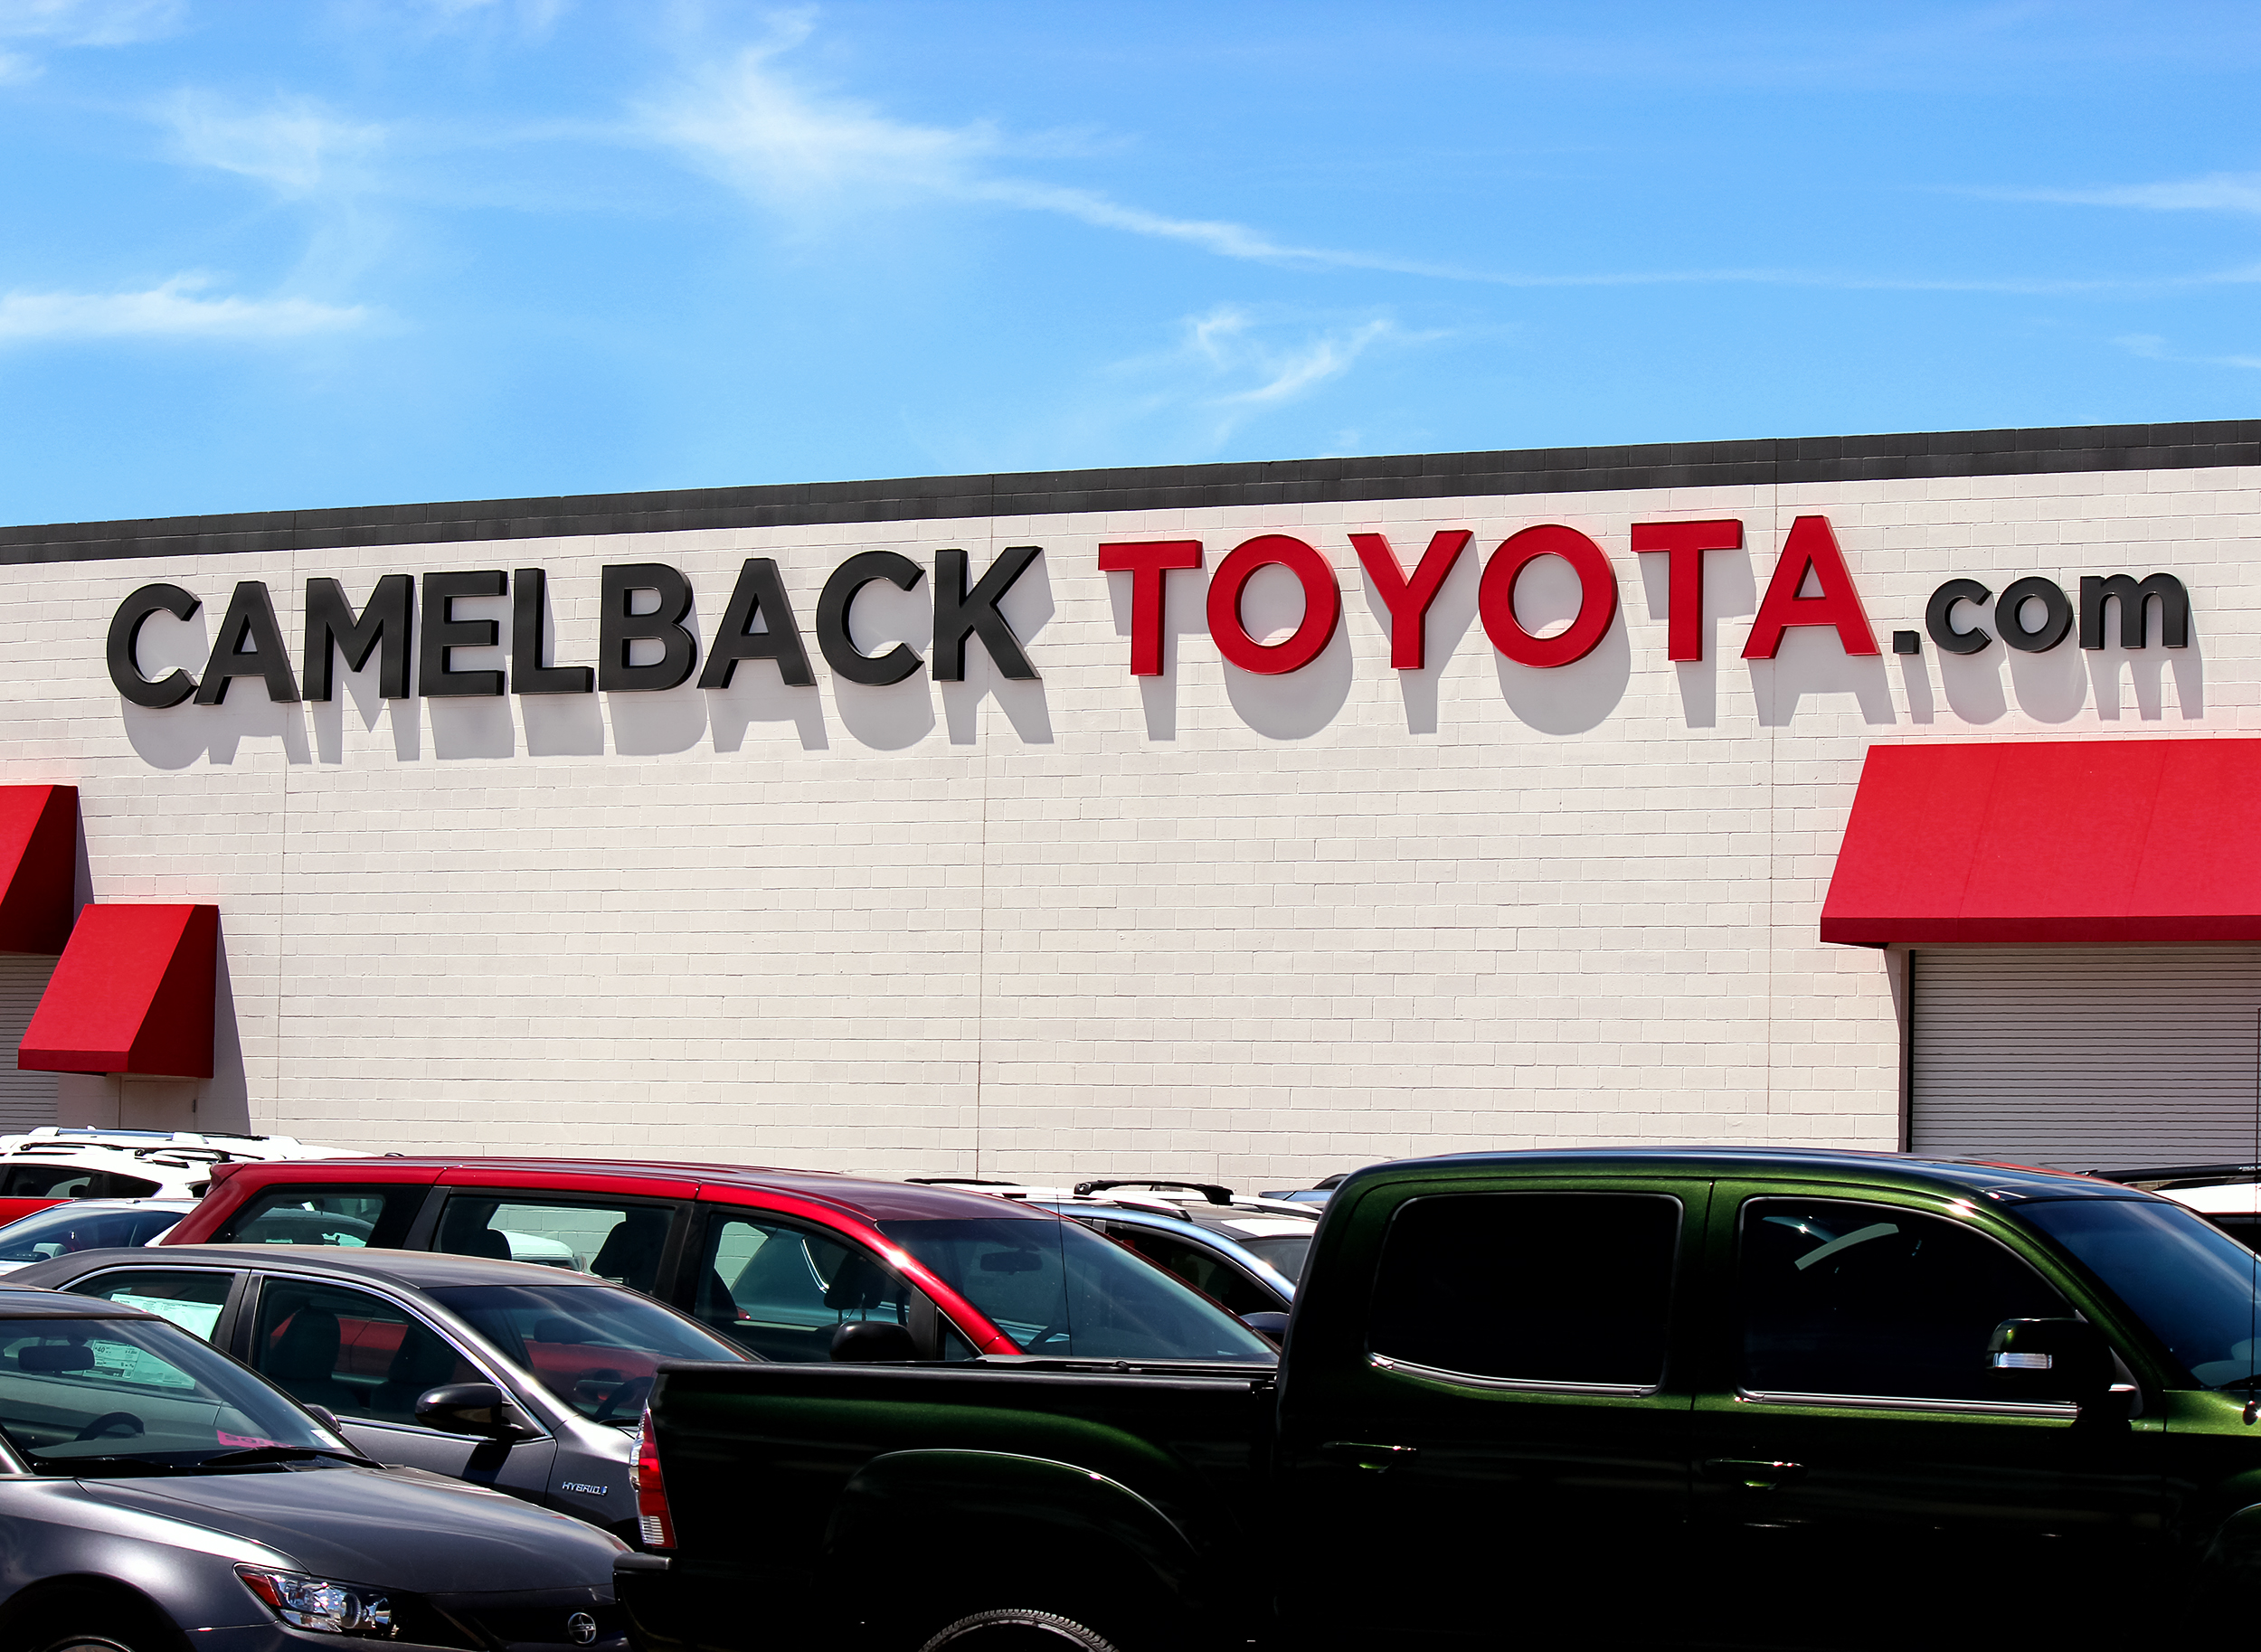 Four-foot tall channel letters with day/night perforated vinyl brand the Camelback Toyota website.